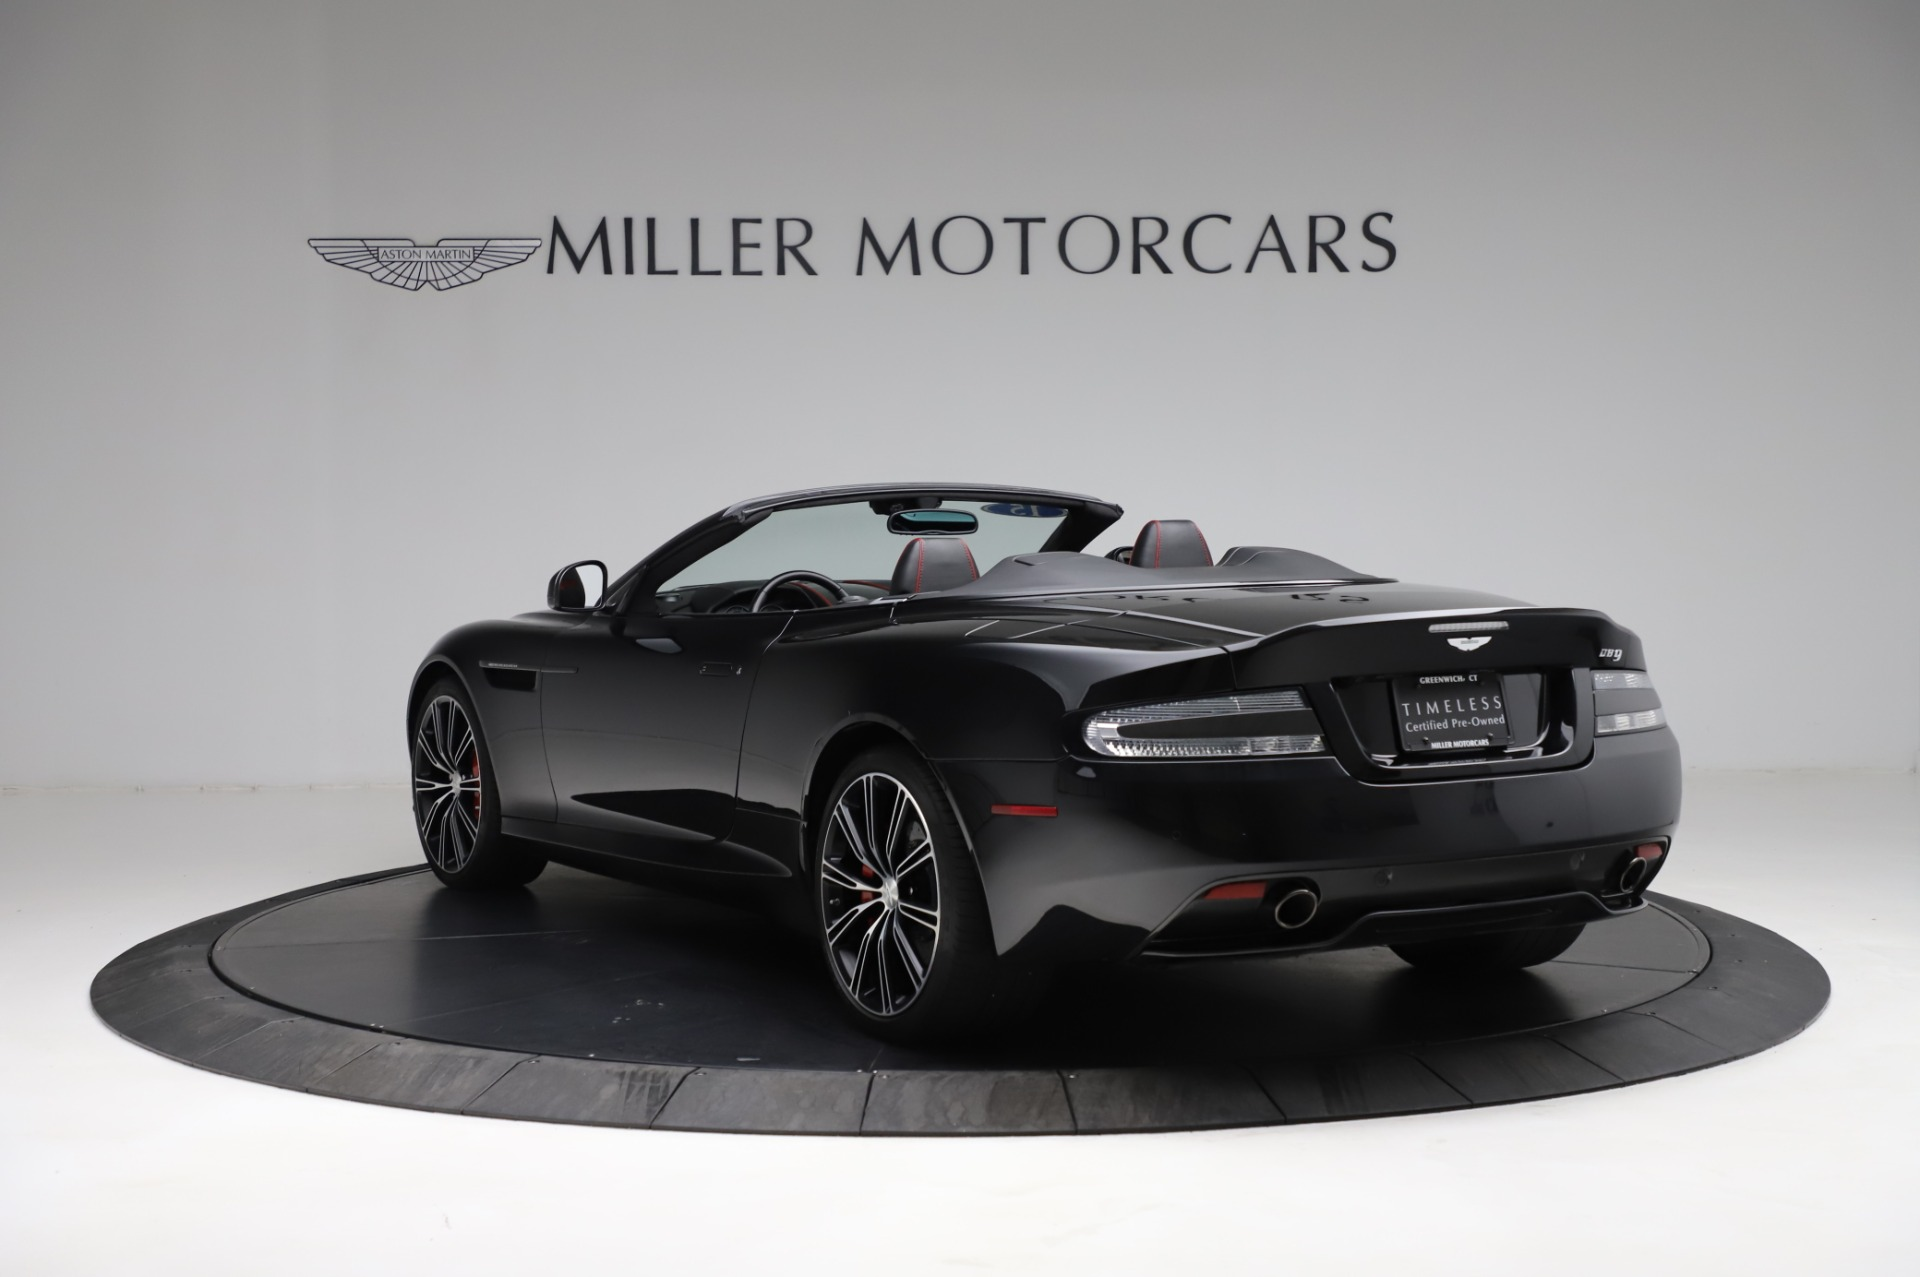 Used 2015 Aston Martin DB9 Carbon Edition Volante For Sale In Westport, CT 1919_p4